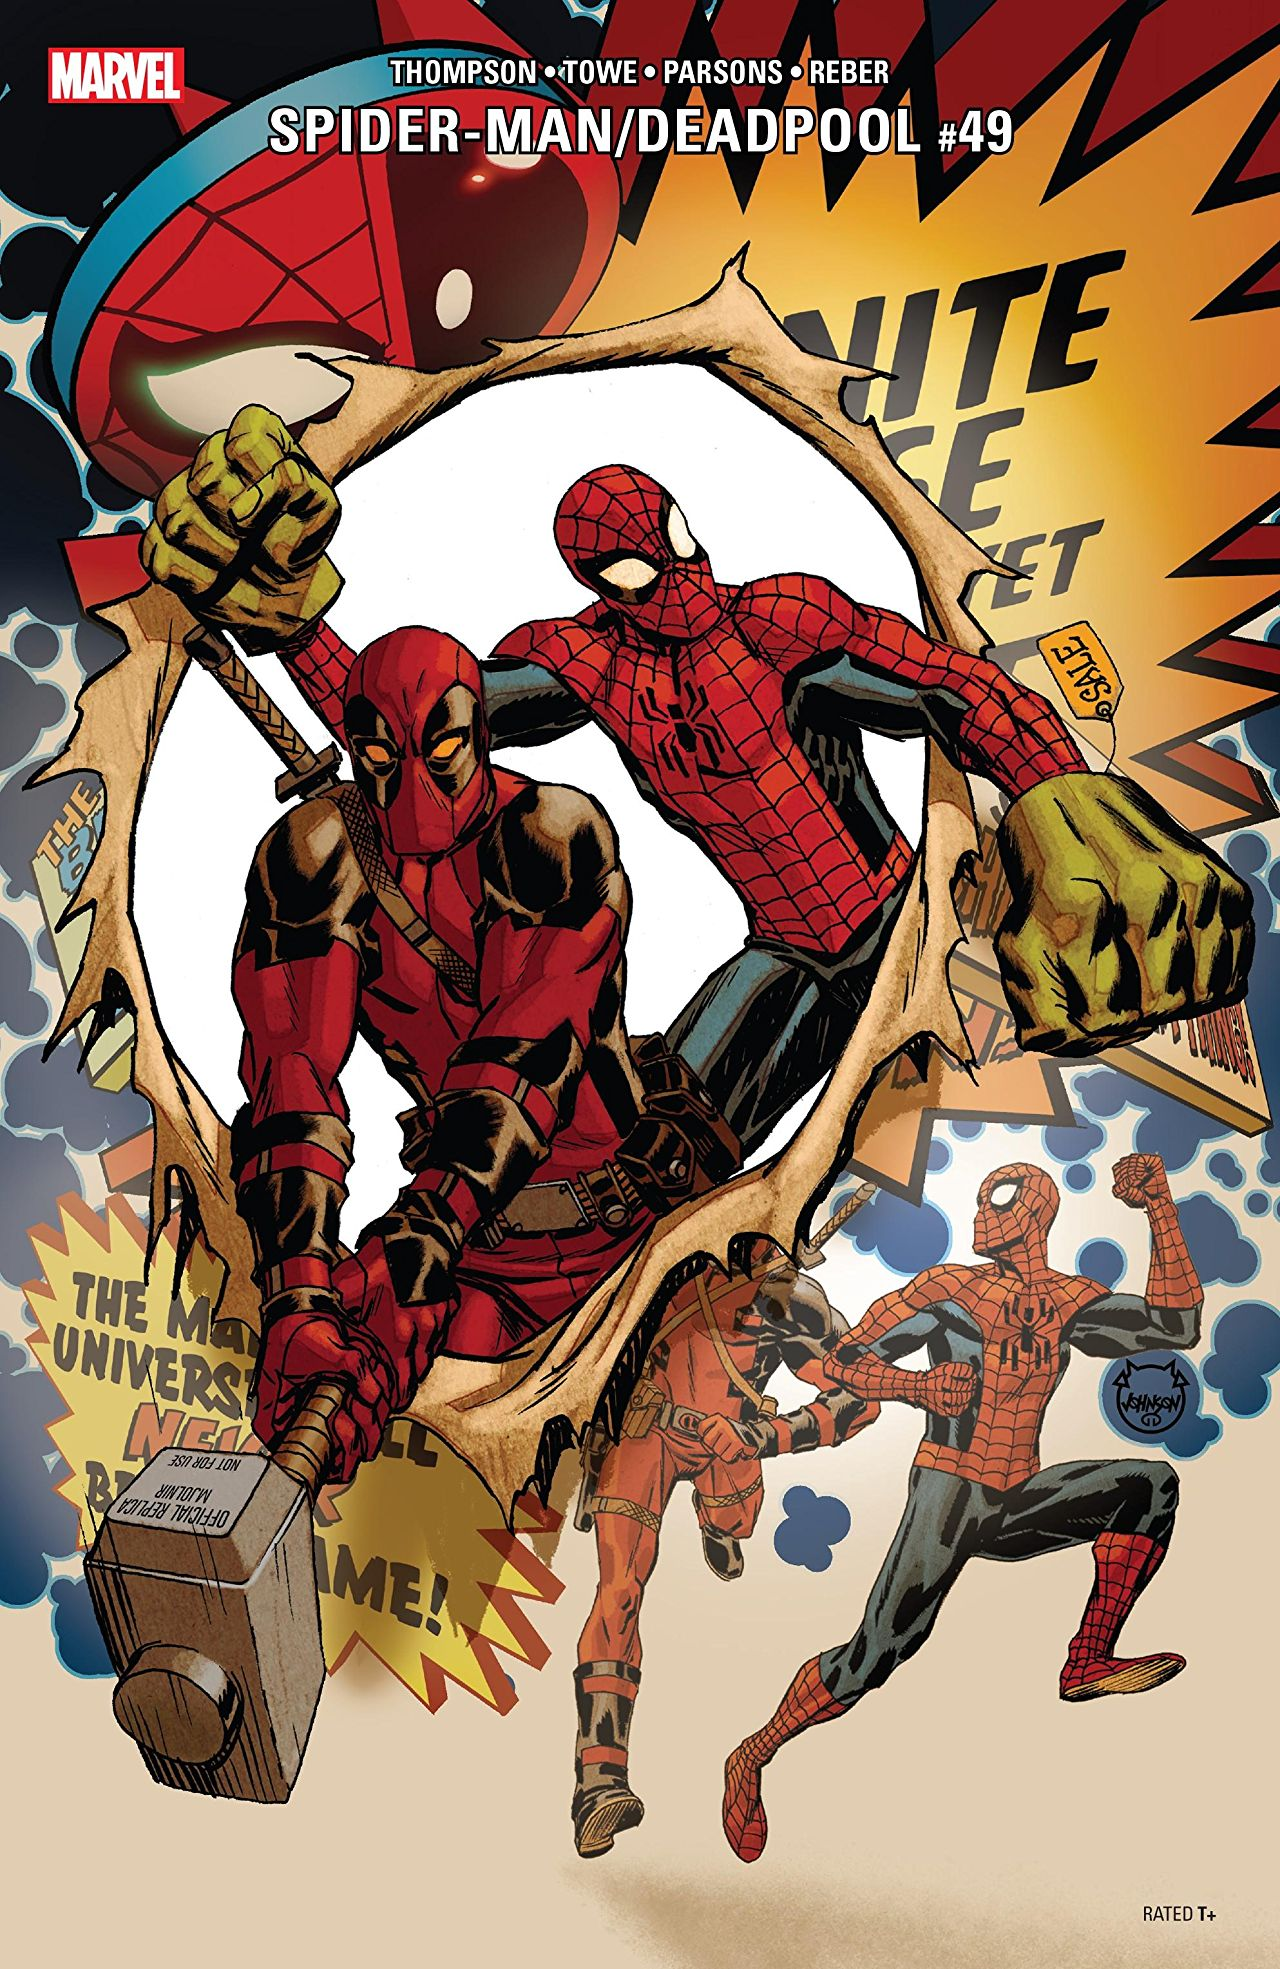 Marvel Preview: Spider-Man/Deadpool #49